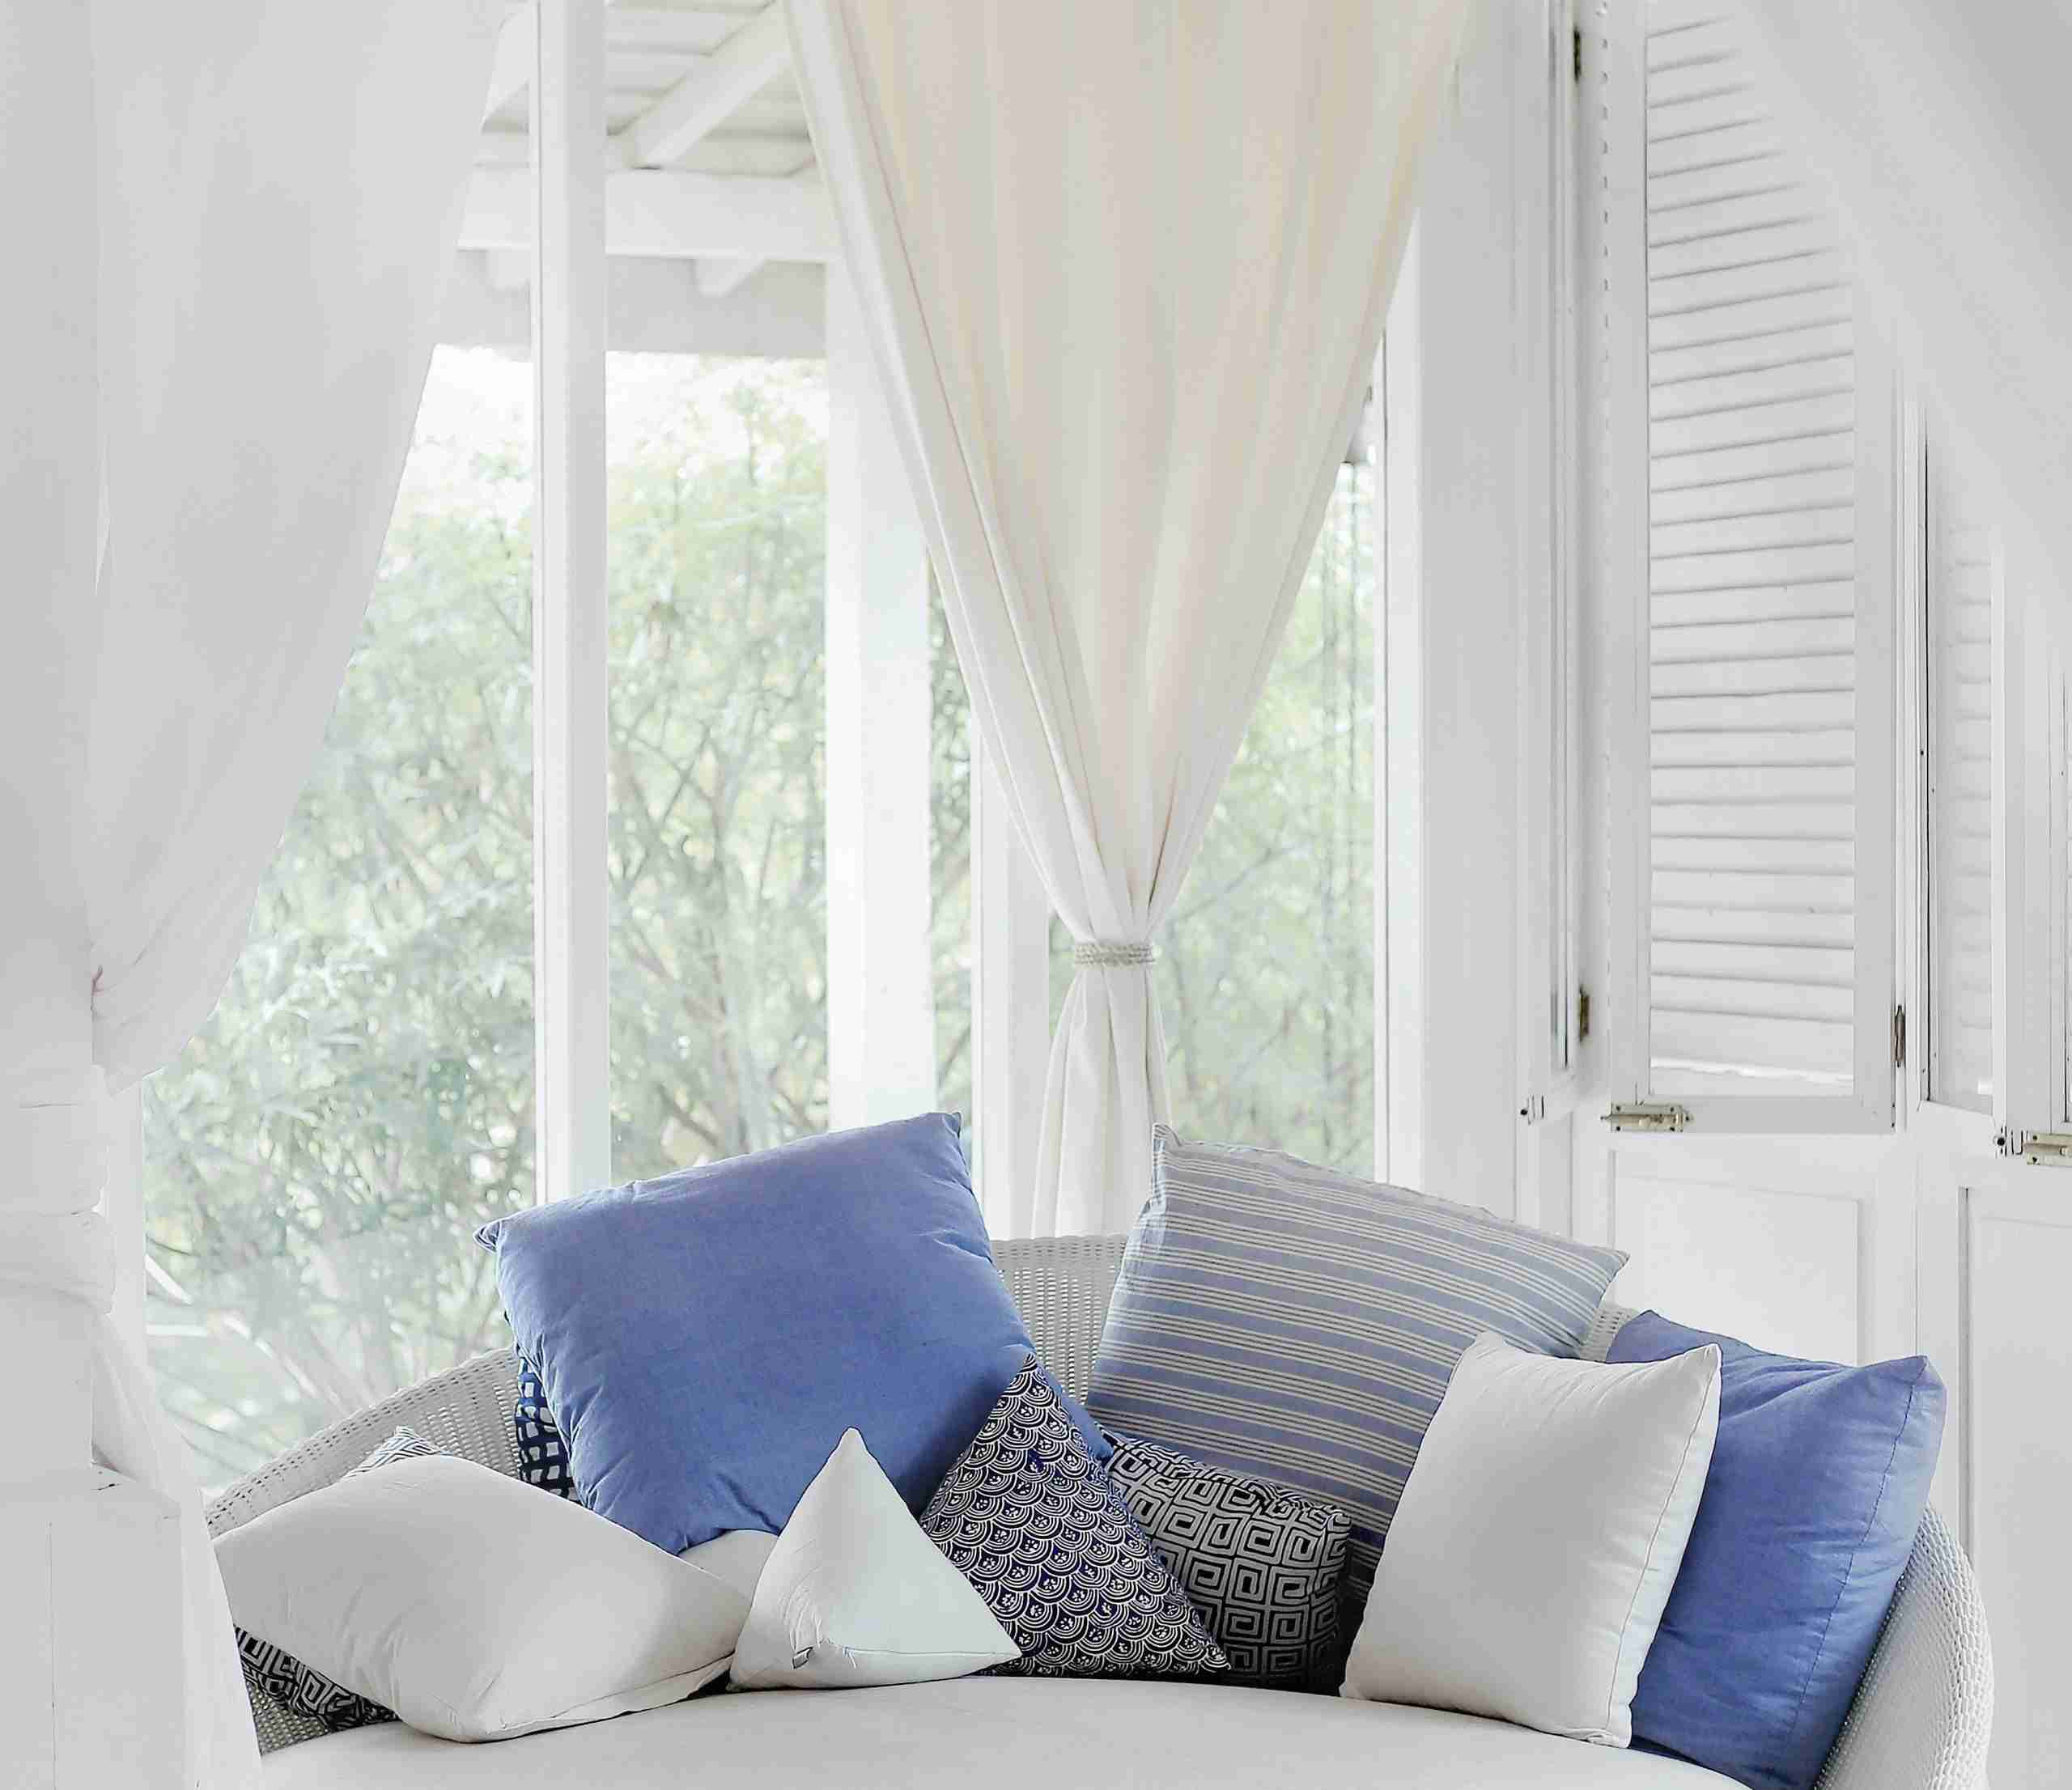 title graphic for Shuttertec blog about choosing shutters or curtains